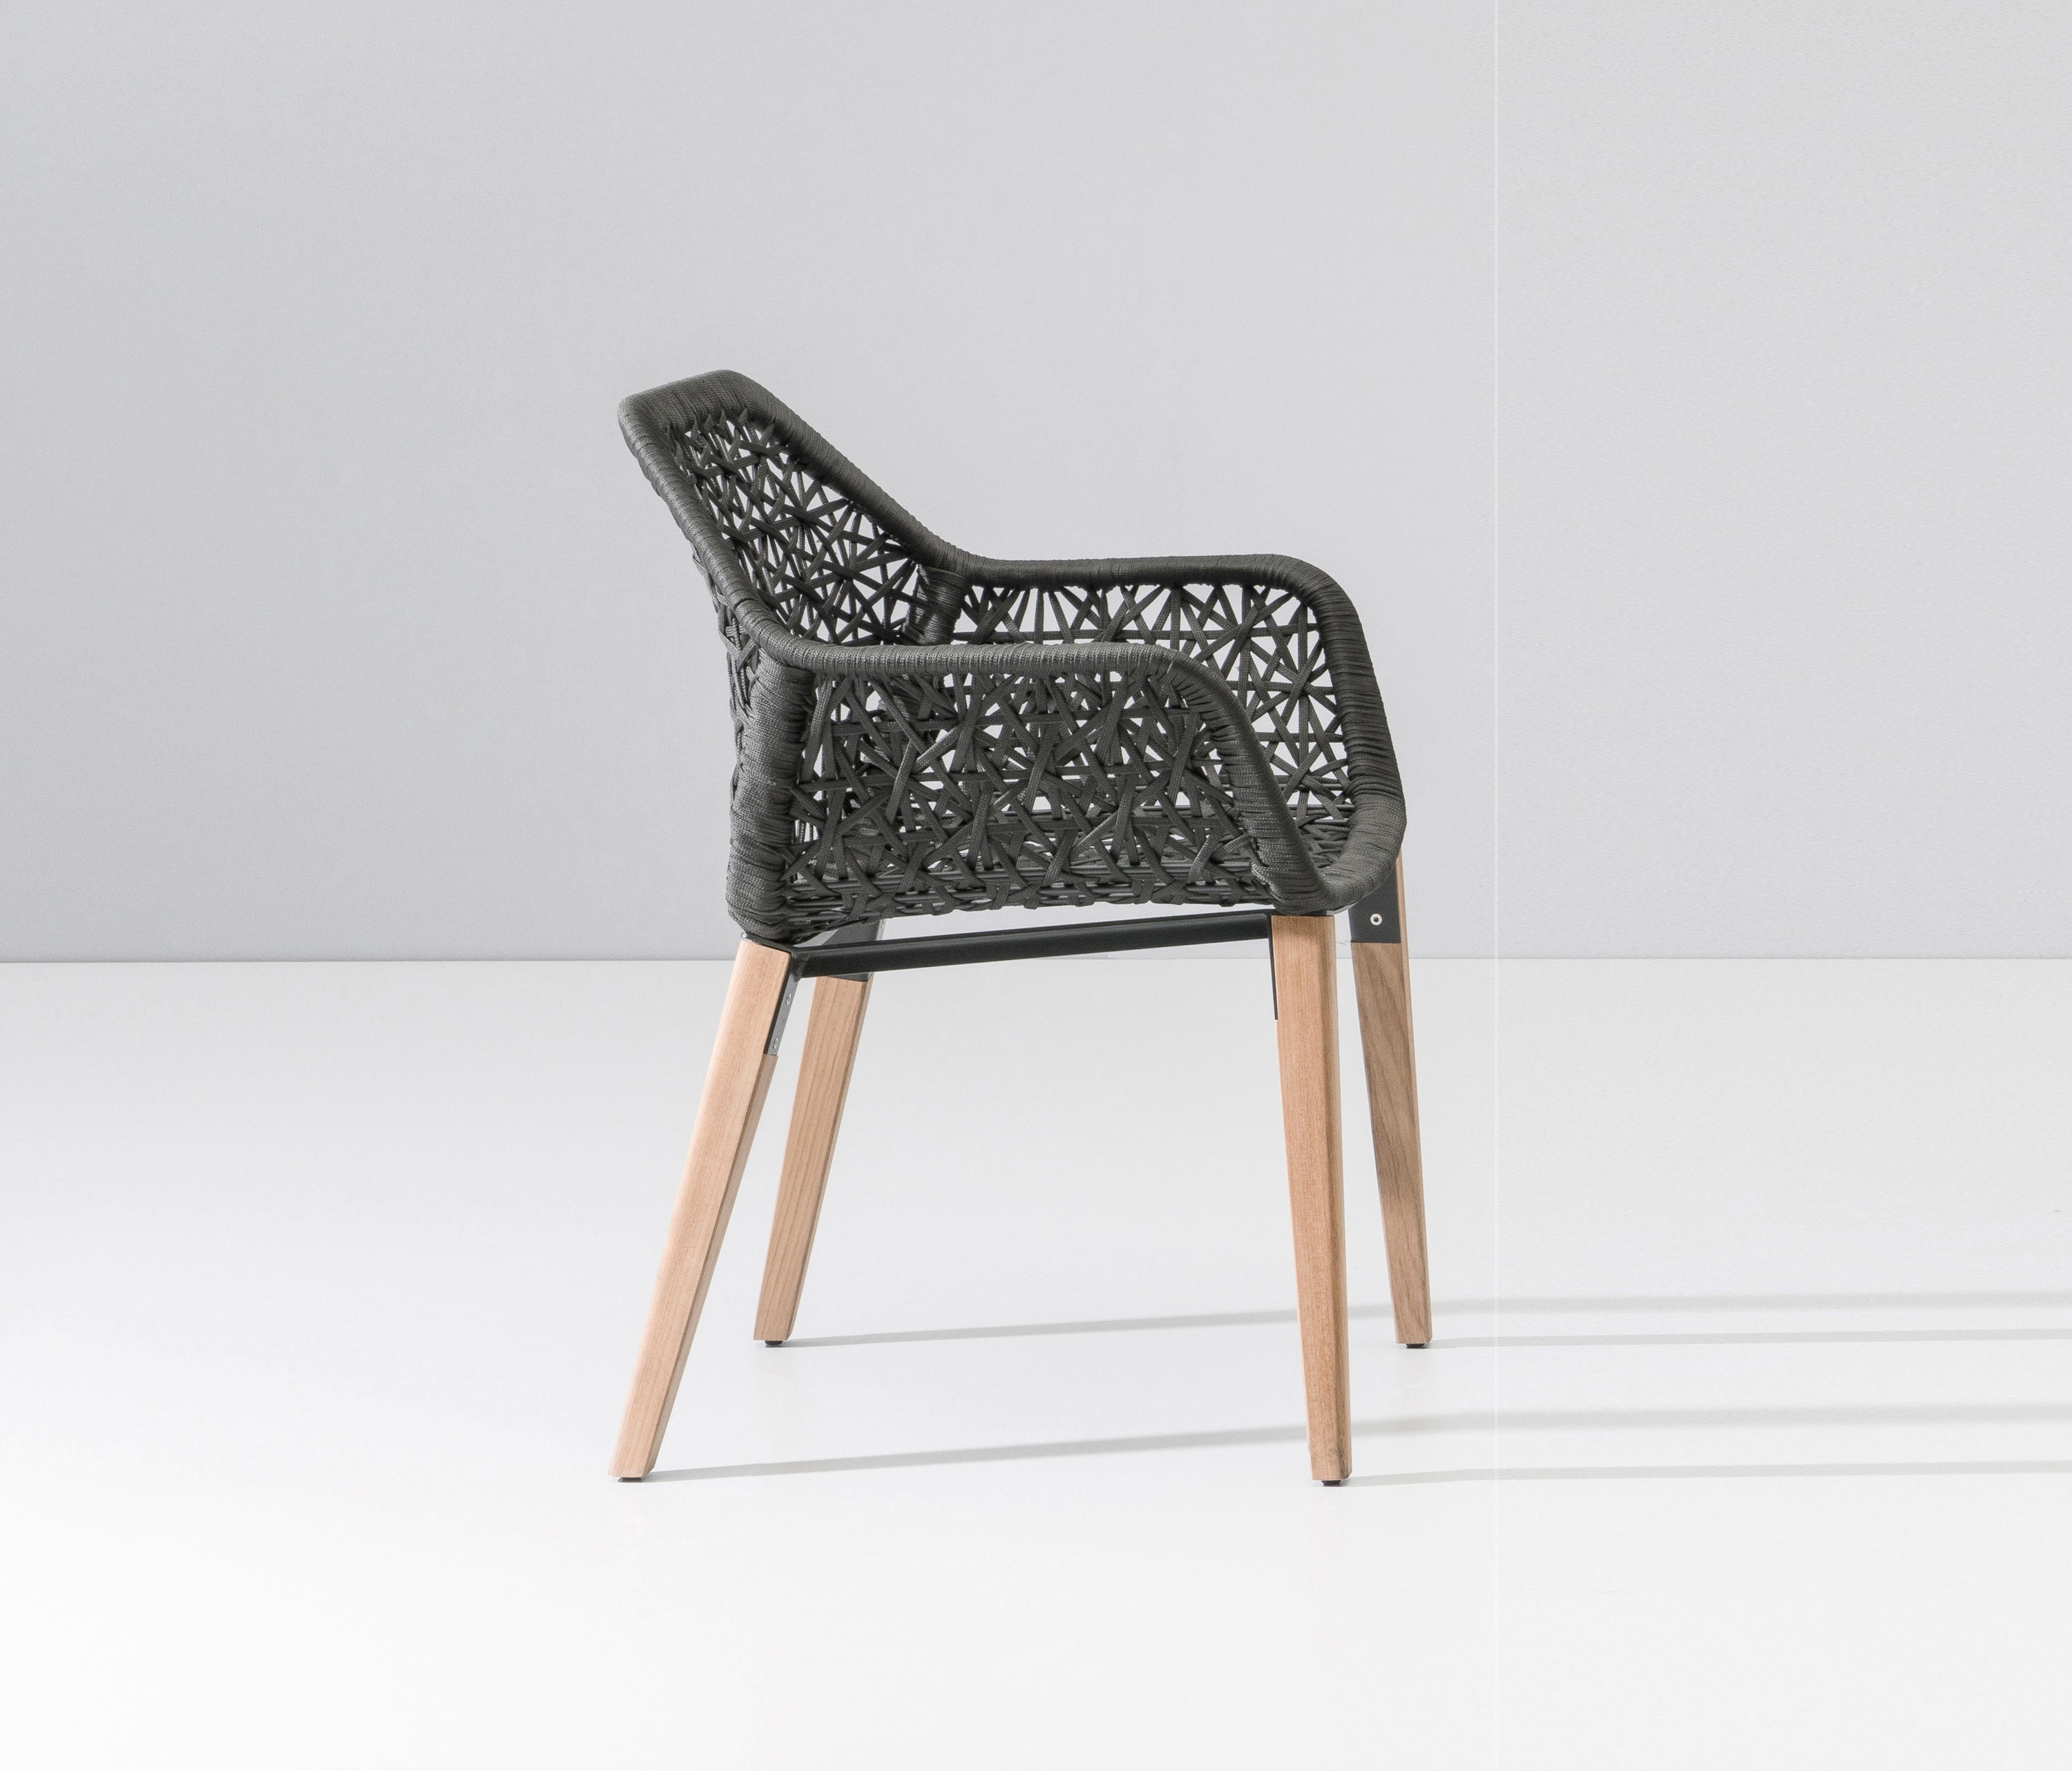 Maia dining armchair garden chairs from kettal architonic for Kettal maia chair